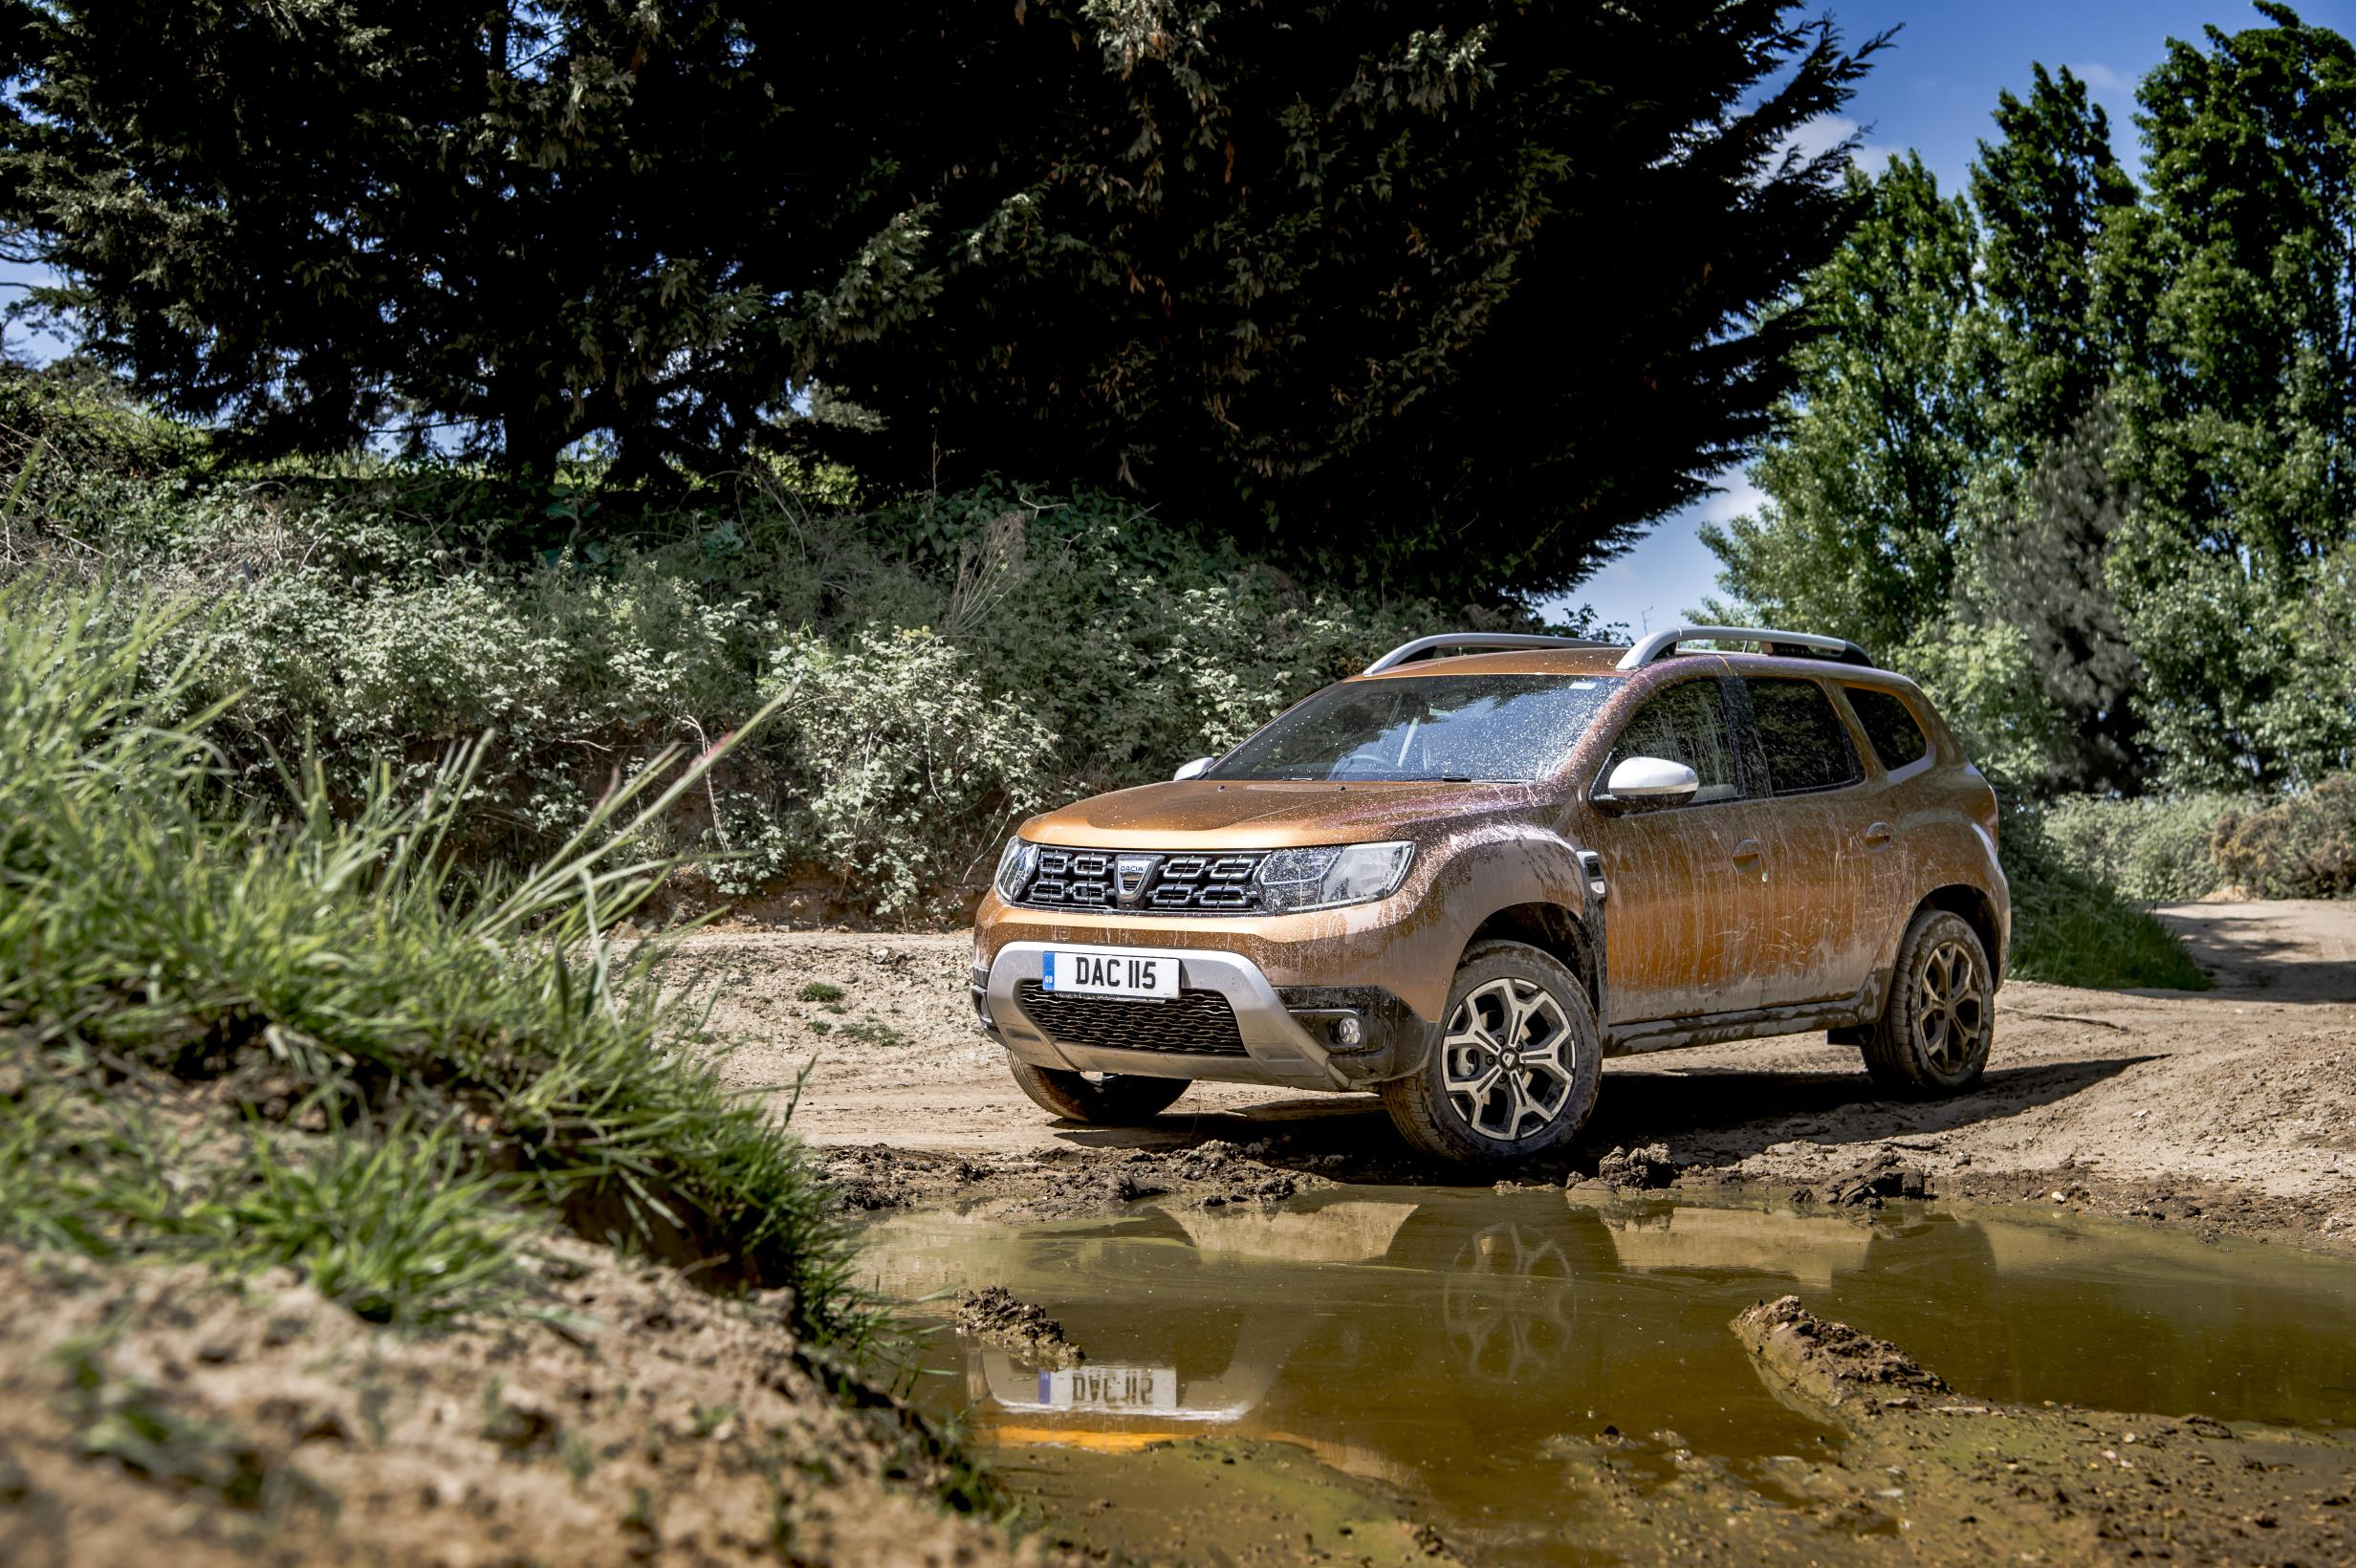 dacia duster gets blue dci 115 4x4 engine in the uk for 15 695 autoevolution. Black Bedroom Furniture Sets. Home Design Ideas